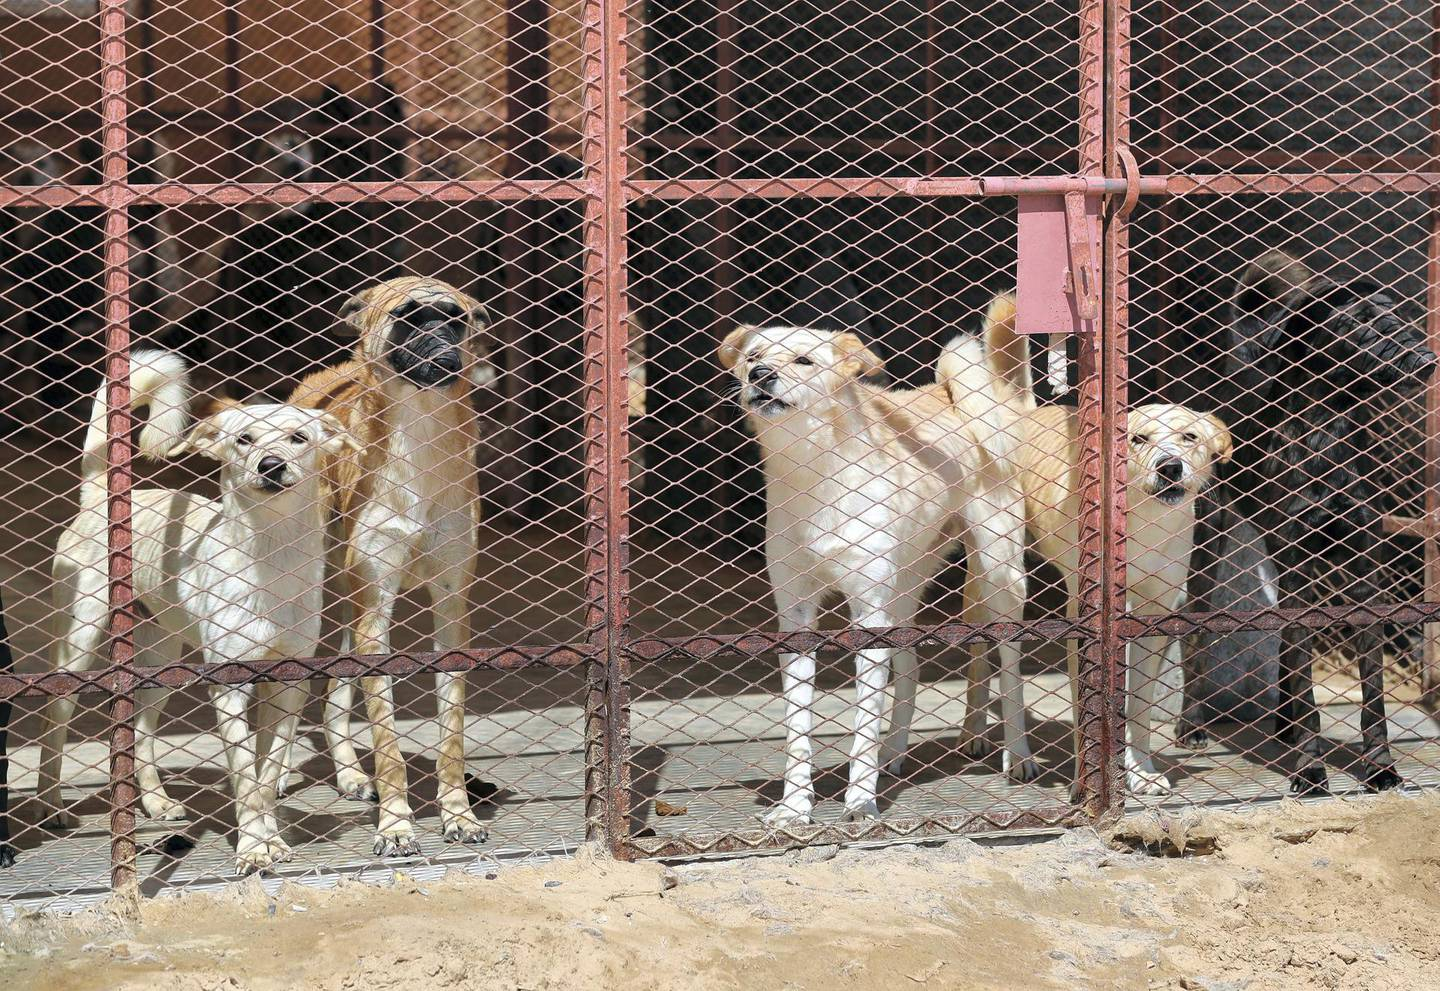 Umm Al Quwain, United Arab Emirates - Reporter: Nick Webster: Hundreds of stray dogs could be the unlikely winners in the widespread disruption enforced by coronavirus as more off-work teachers volunteer to foster homeless pets. Wednesday, March 11th, 2020. Umm Al Quwain. Chris Whiteoak / The National